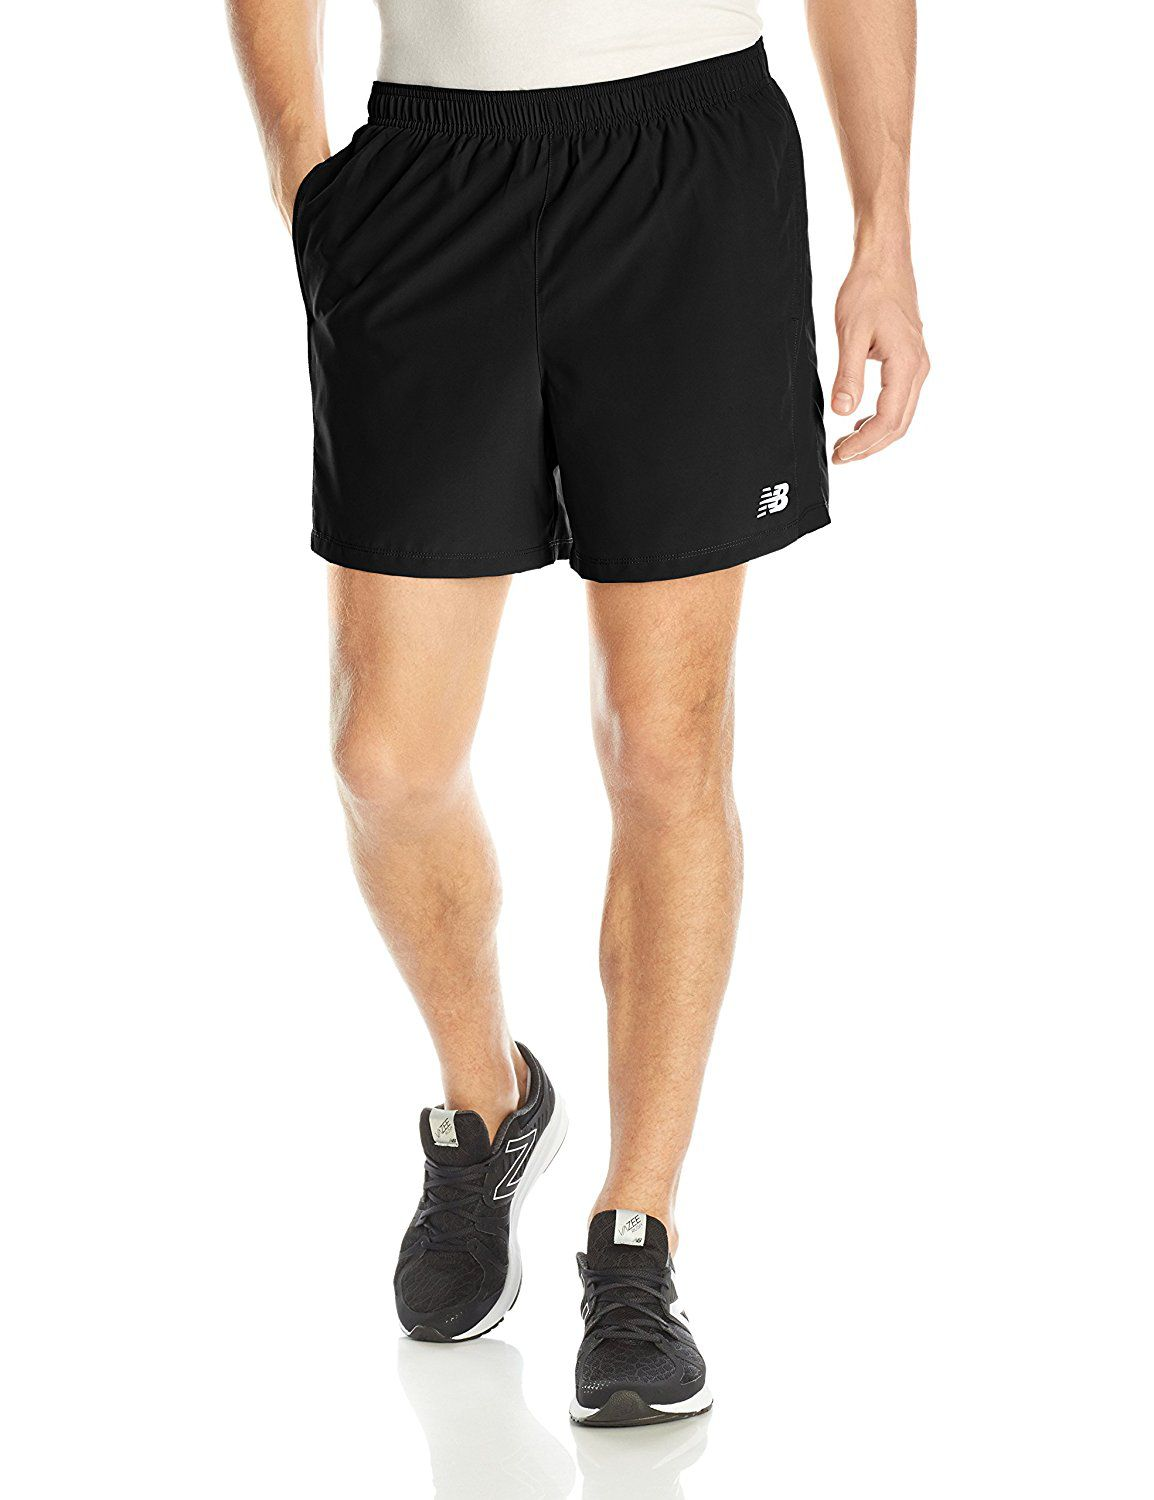 The Best Running Shorts For Men Of 2021